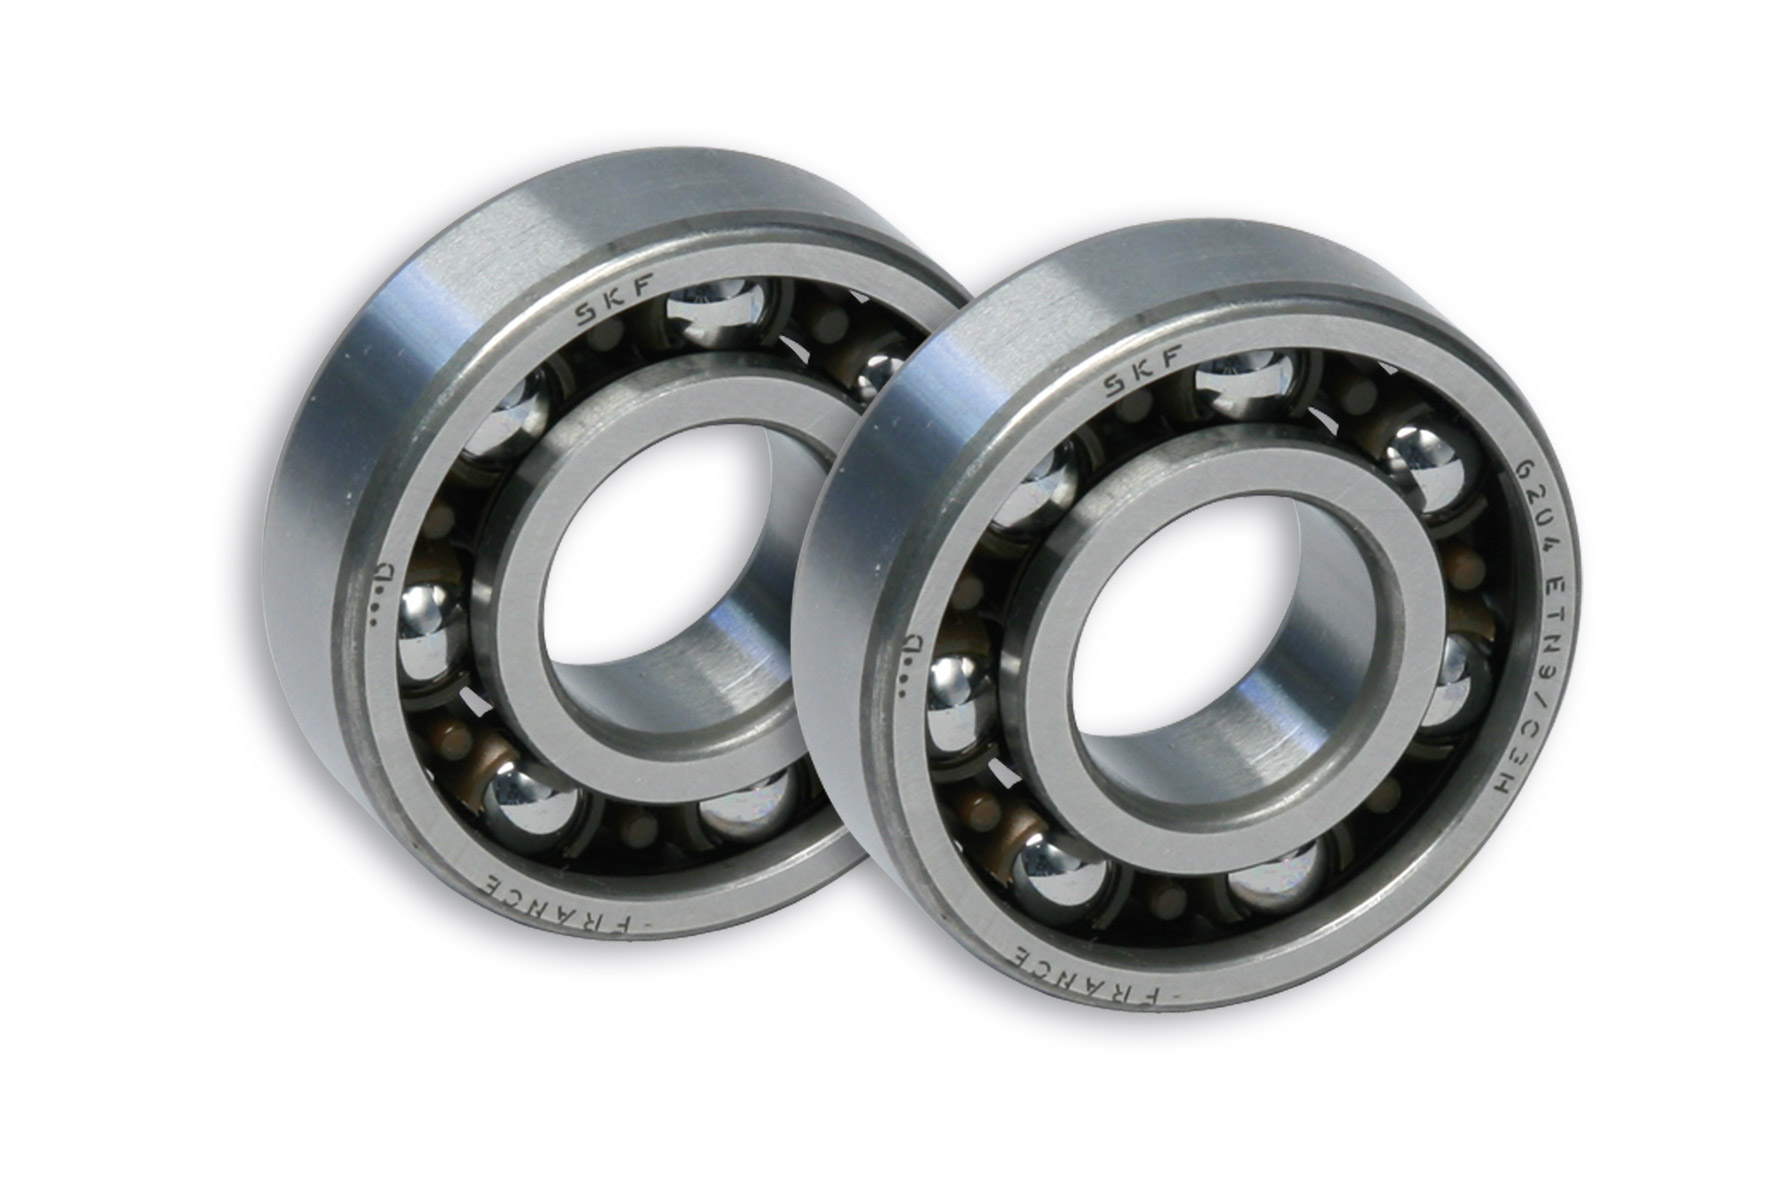 2 roller bearings with balls 20x47x14 c3h for cranksh moto derbi scooter min. Black Bedroom Furniture Sets. Home Design Ideas